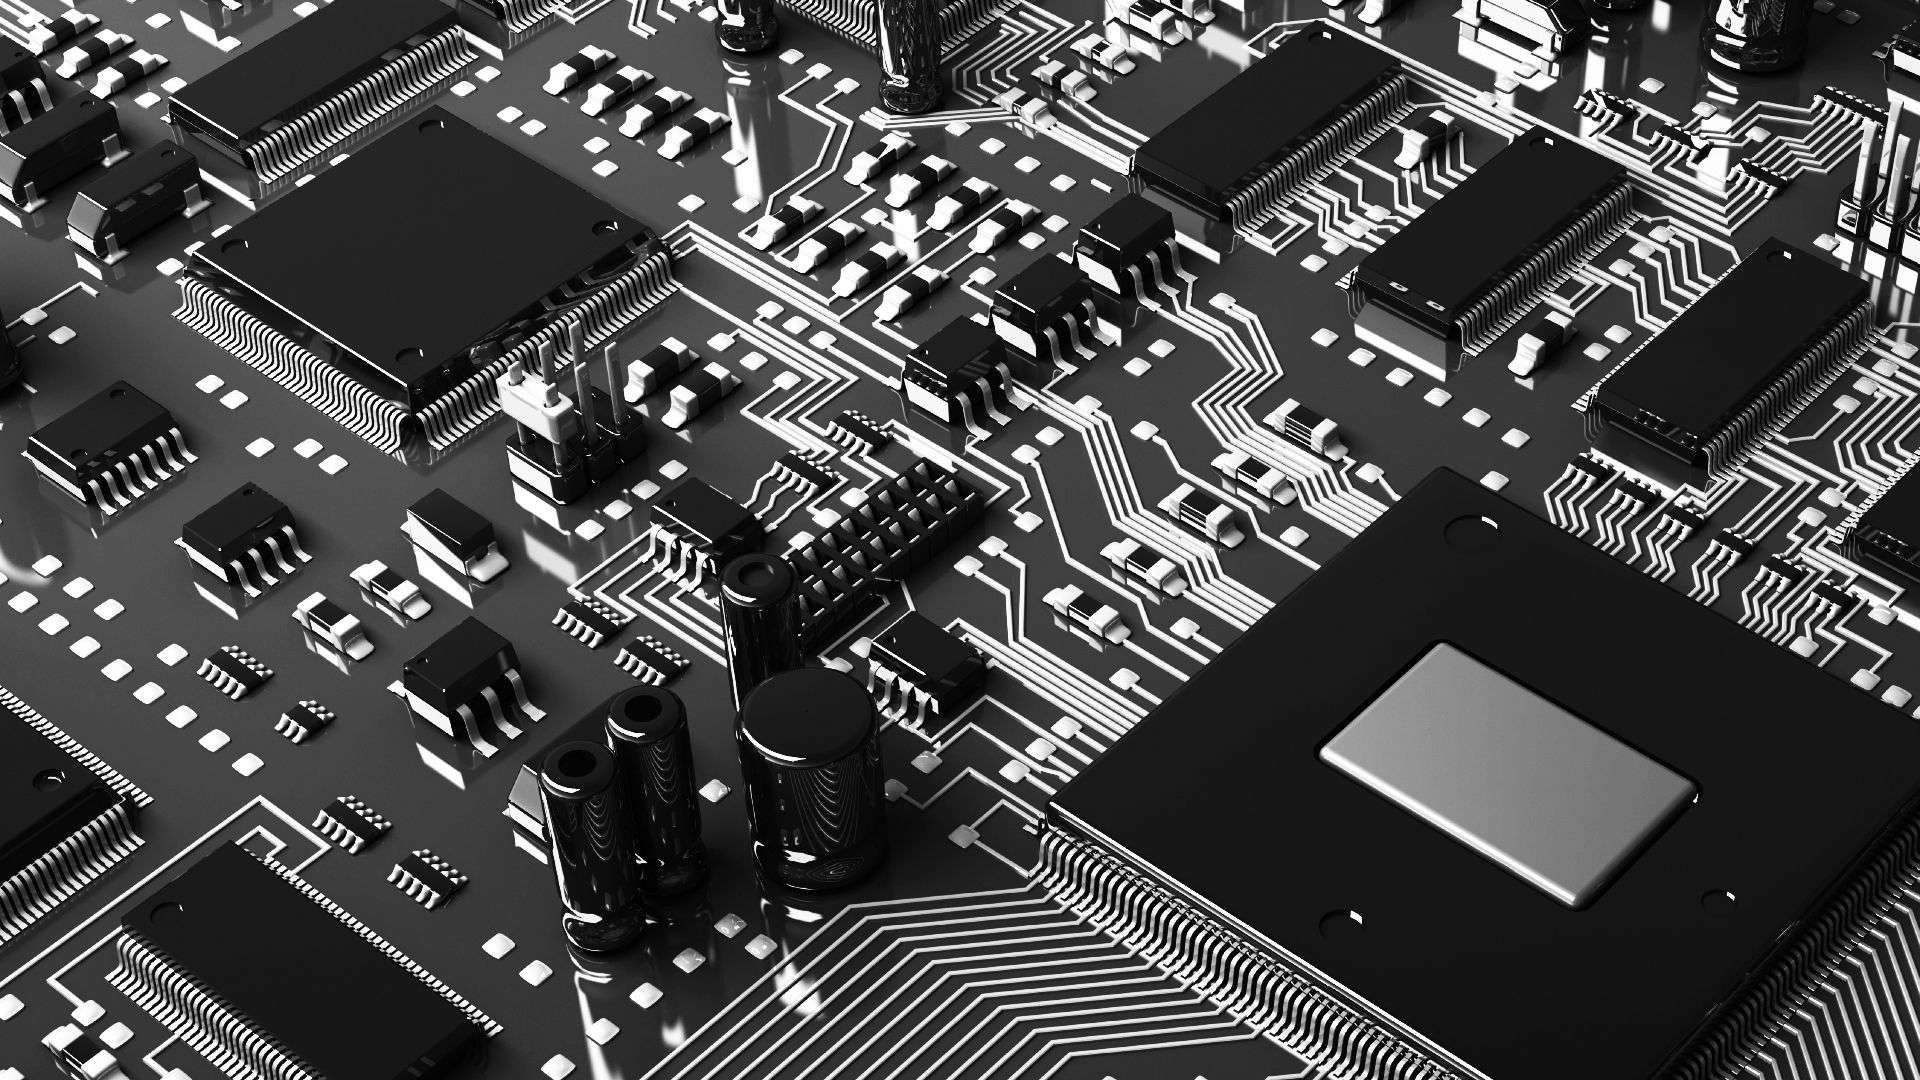 10 Best Circuit Board Wallpaper Hd FULL HD 1080p For PC Background